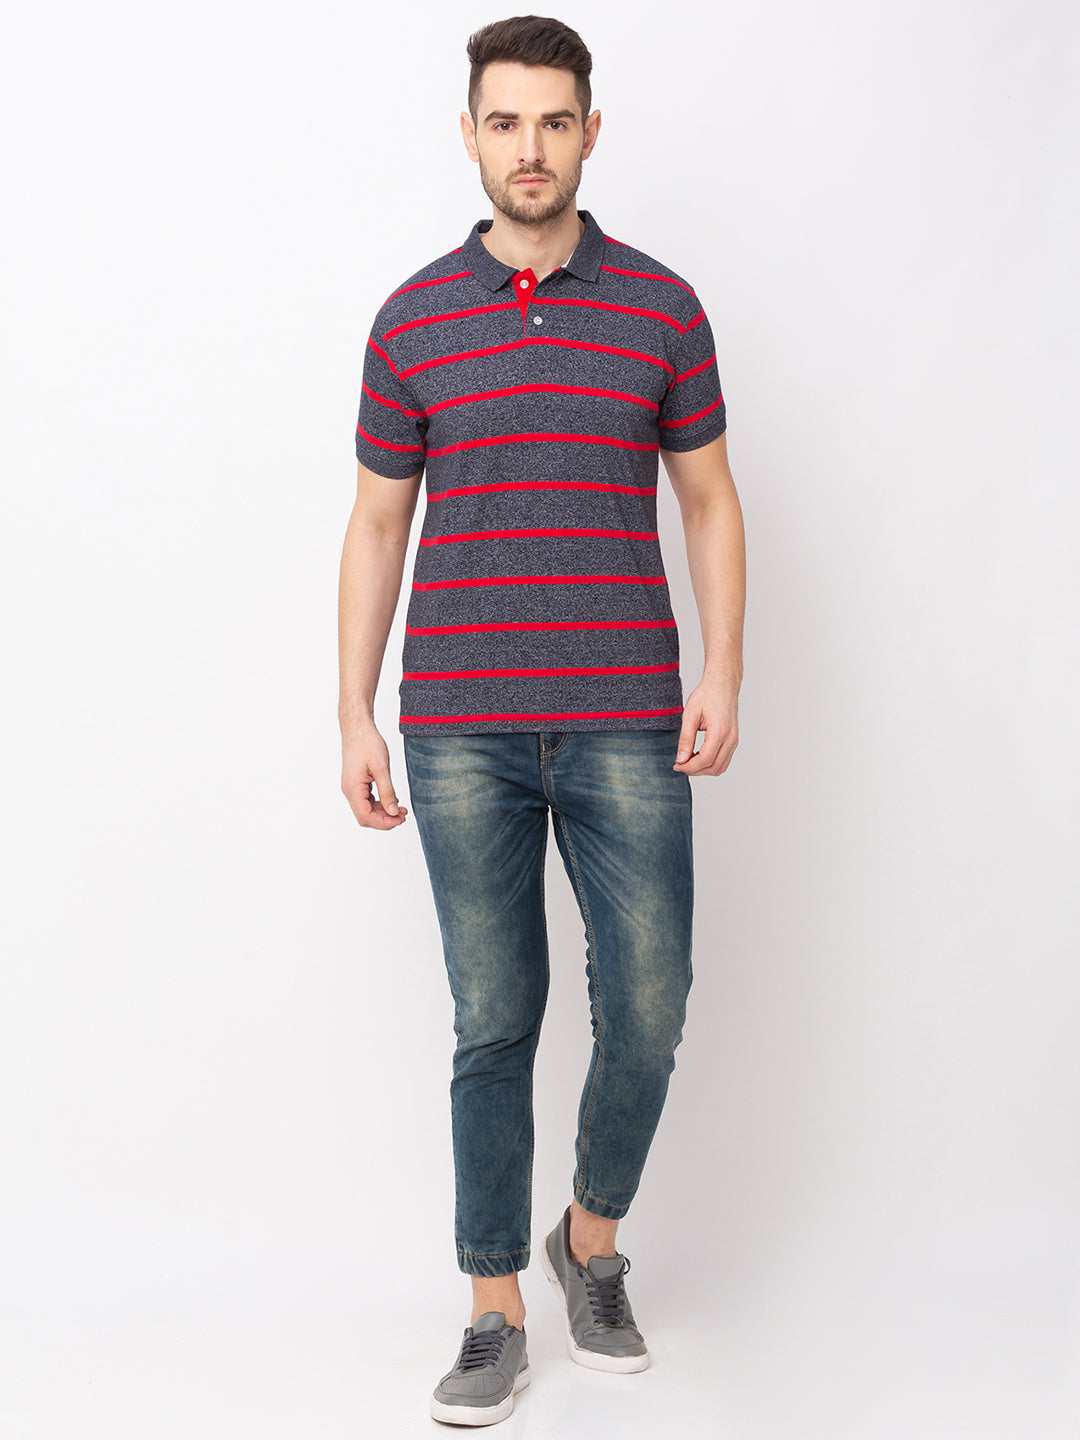 Globus Red Striped T-Shirt-5